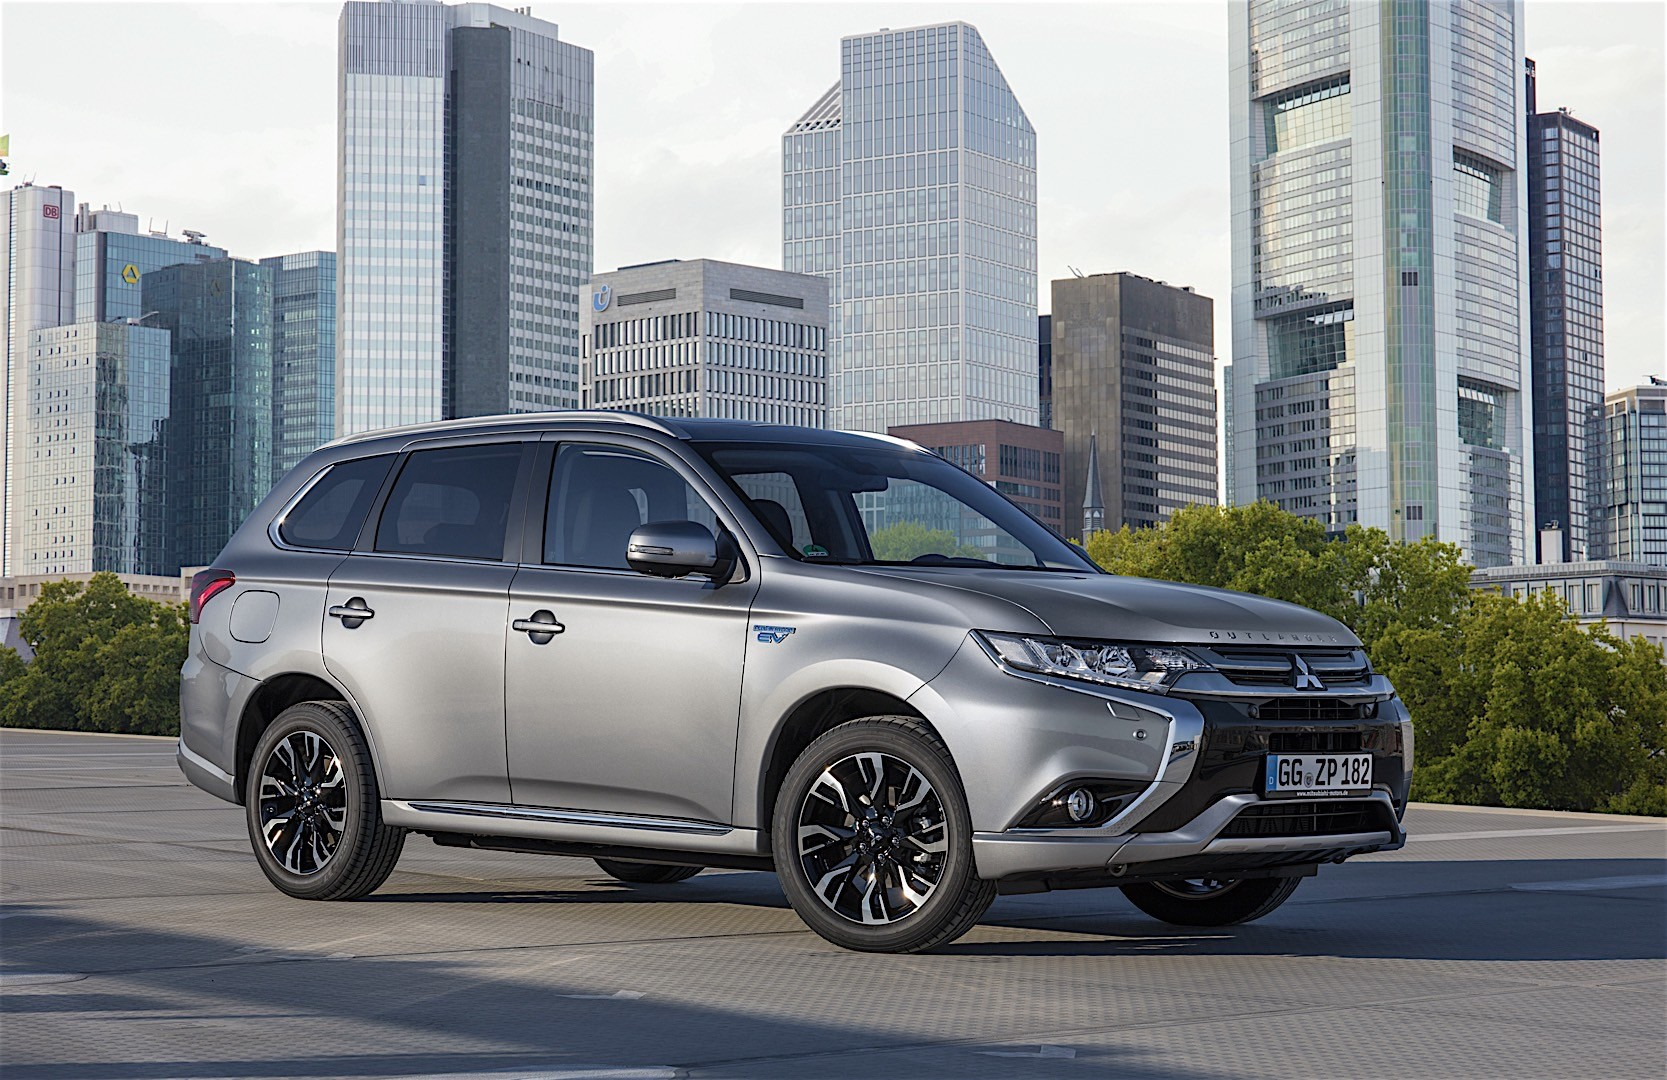 gasoline powered cars with Mitsubishi Outlander Phev 2016 on Fuelcell vehicle moreover Ssangyong Korando 1997 moreover Kia Rio Hatchback 2009 moreover Porsche 911 Carrera 4 996 2001 besides Toyota Prius 1997.